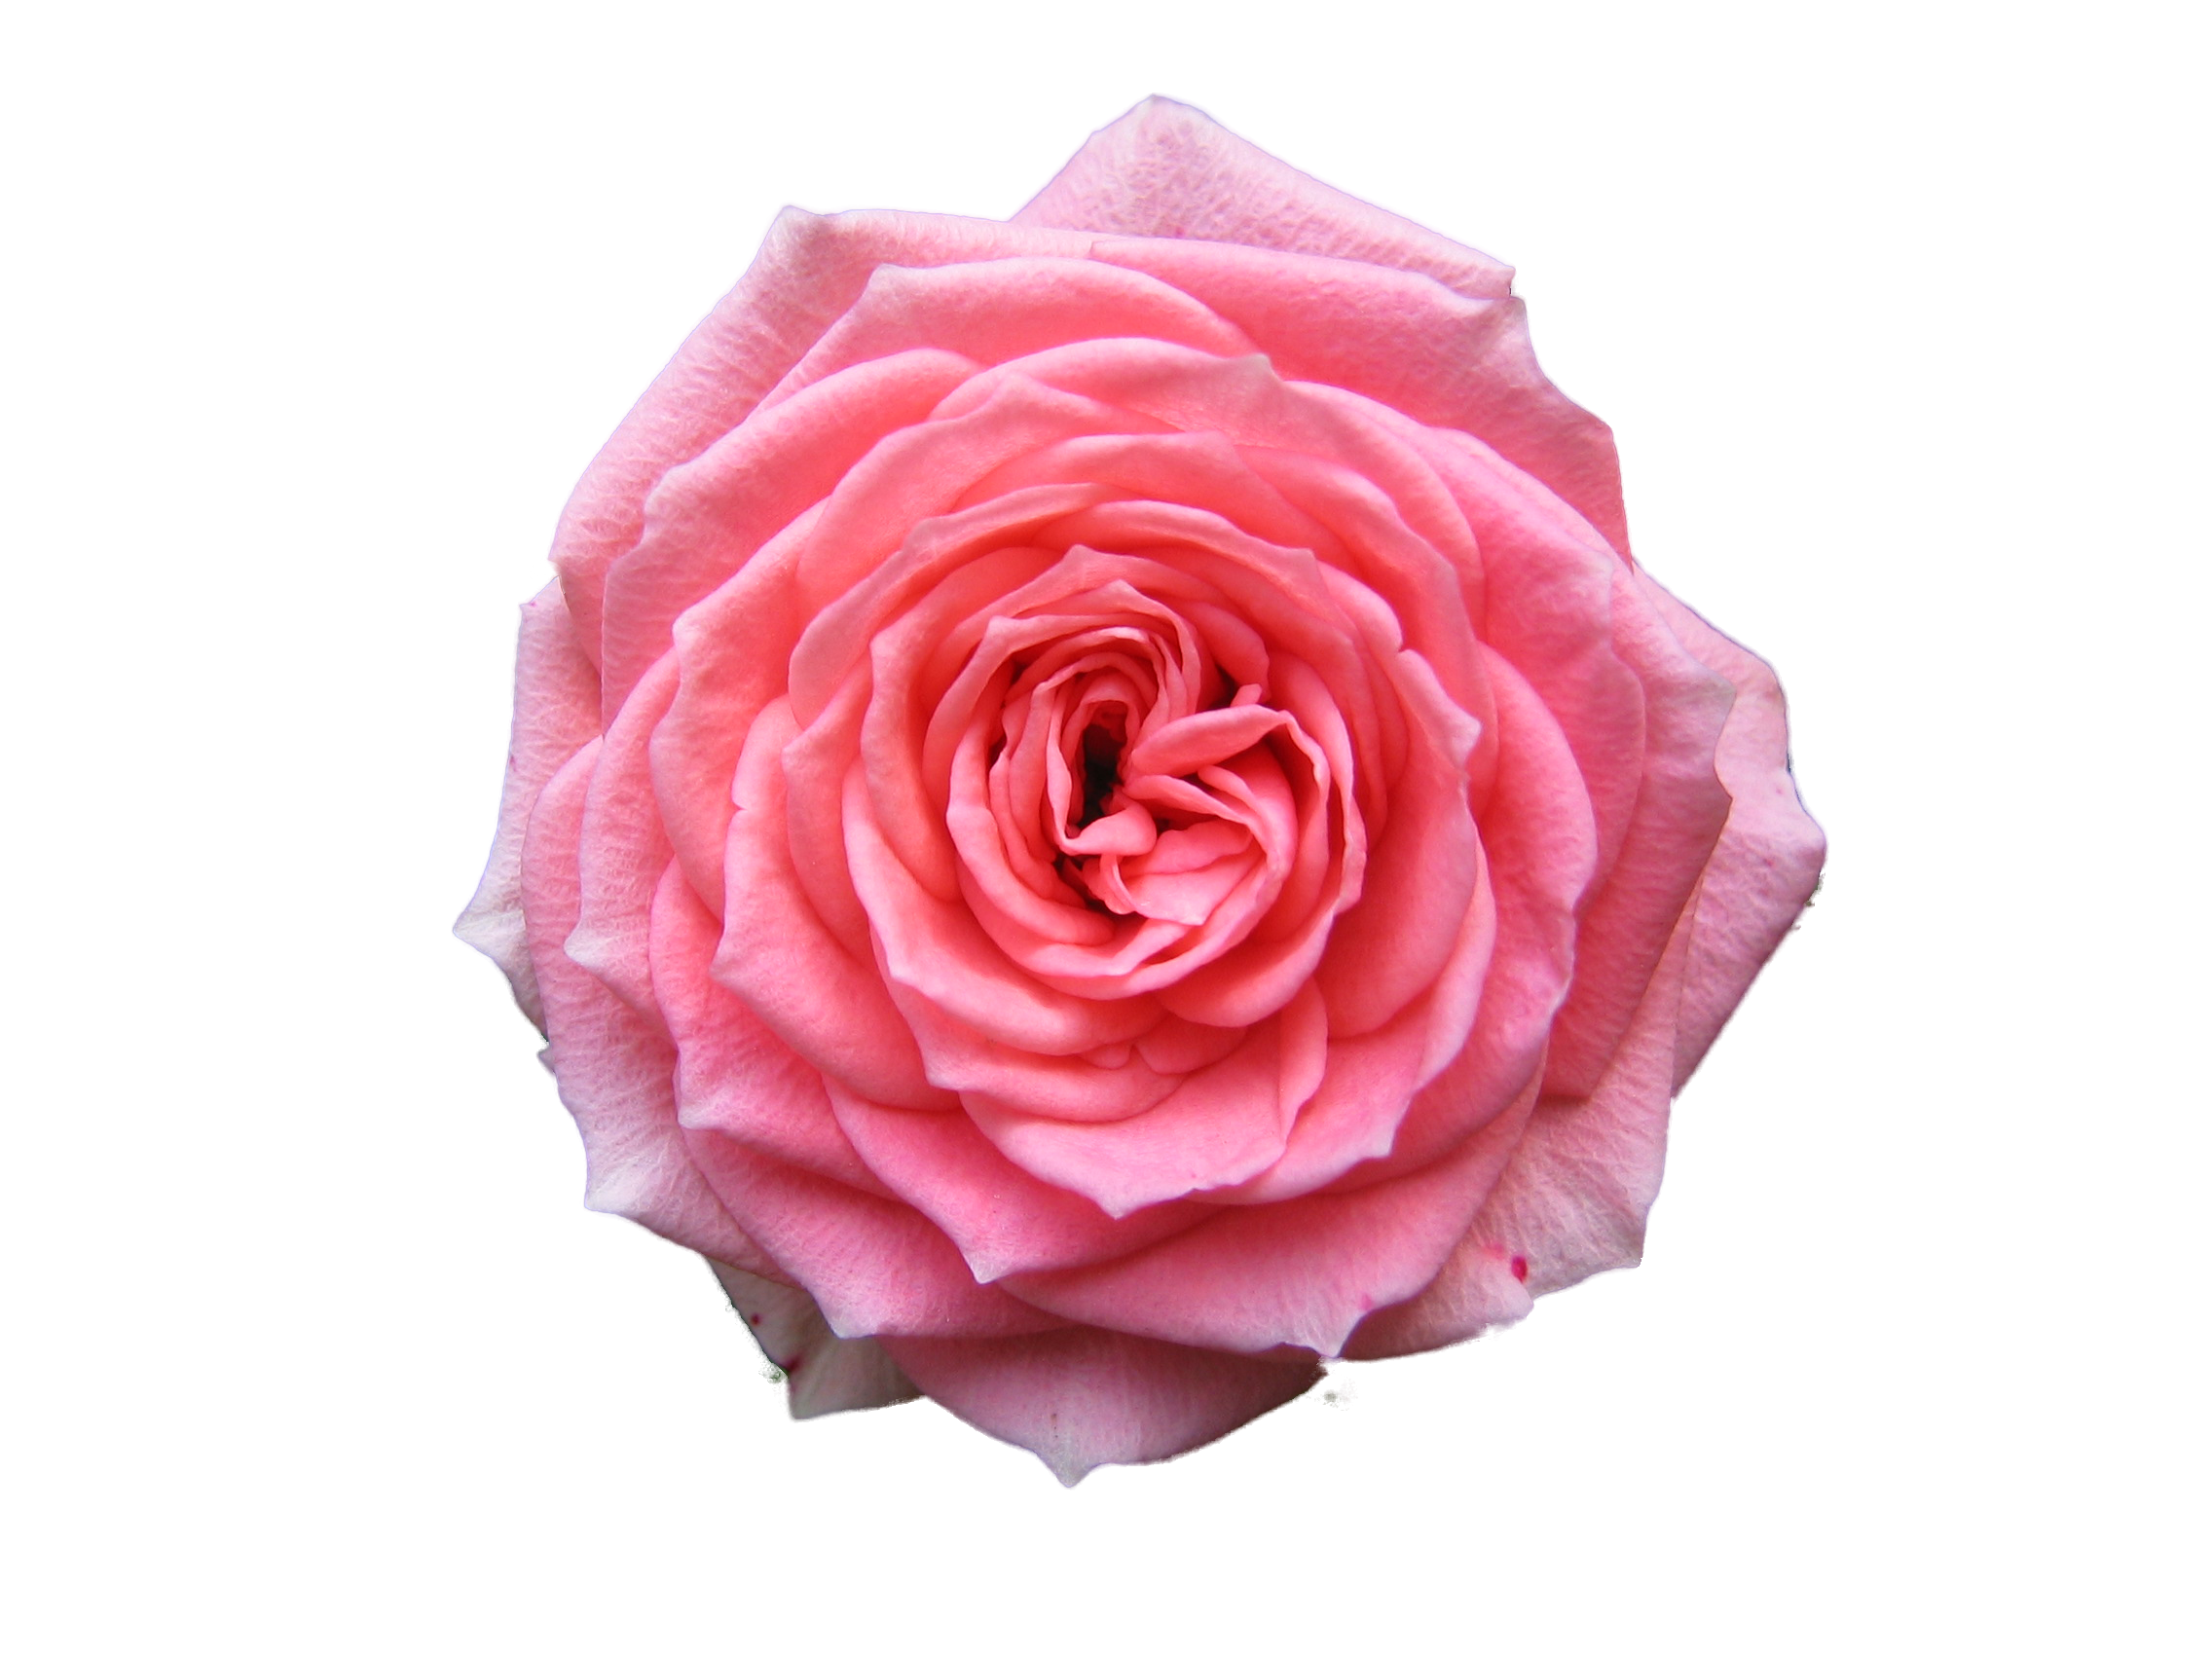 Transparent Background Hd Rose Png image #18987